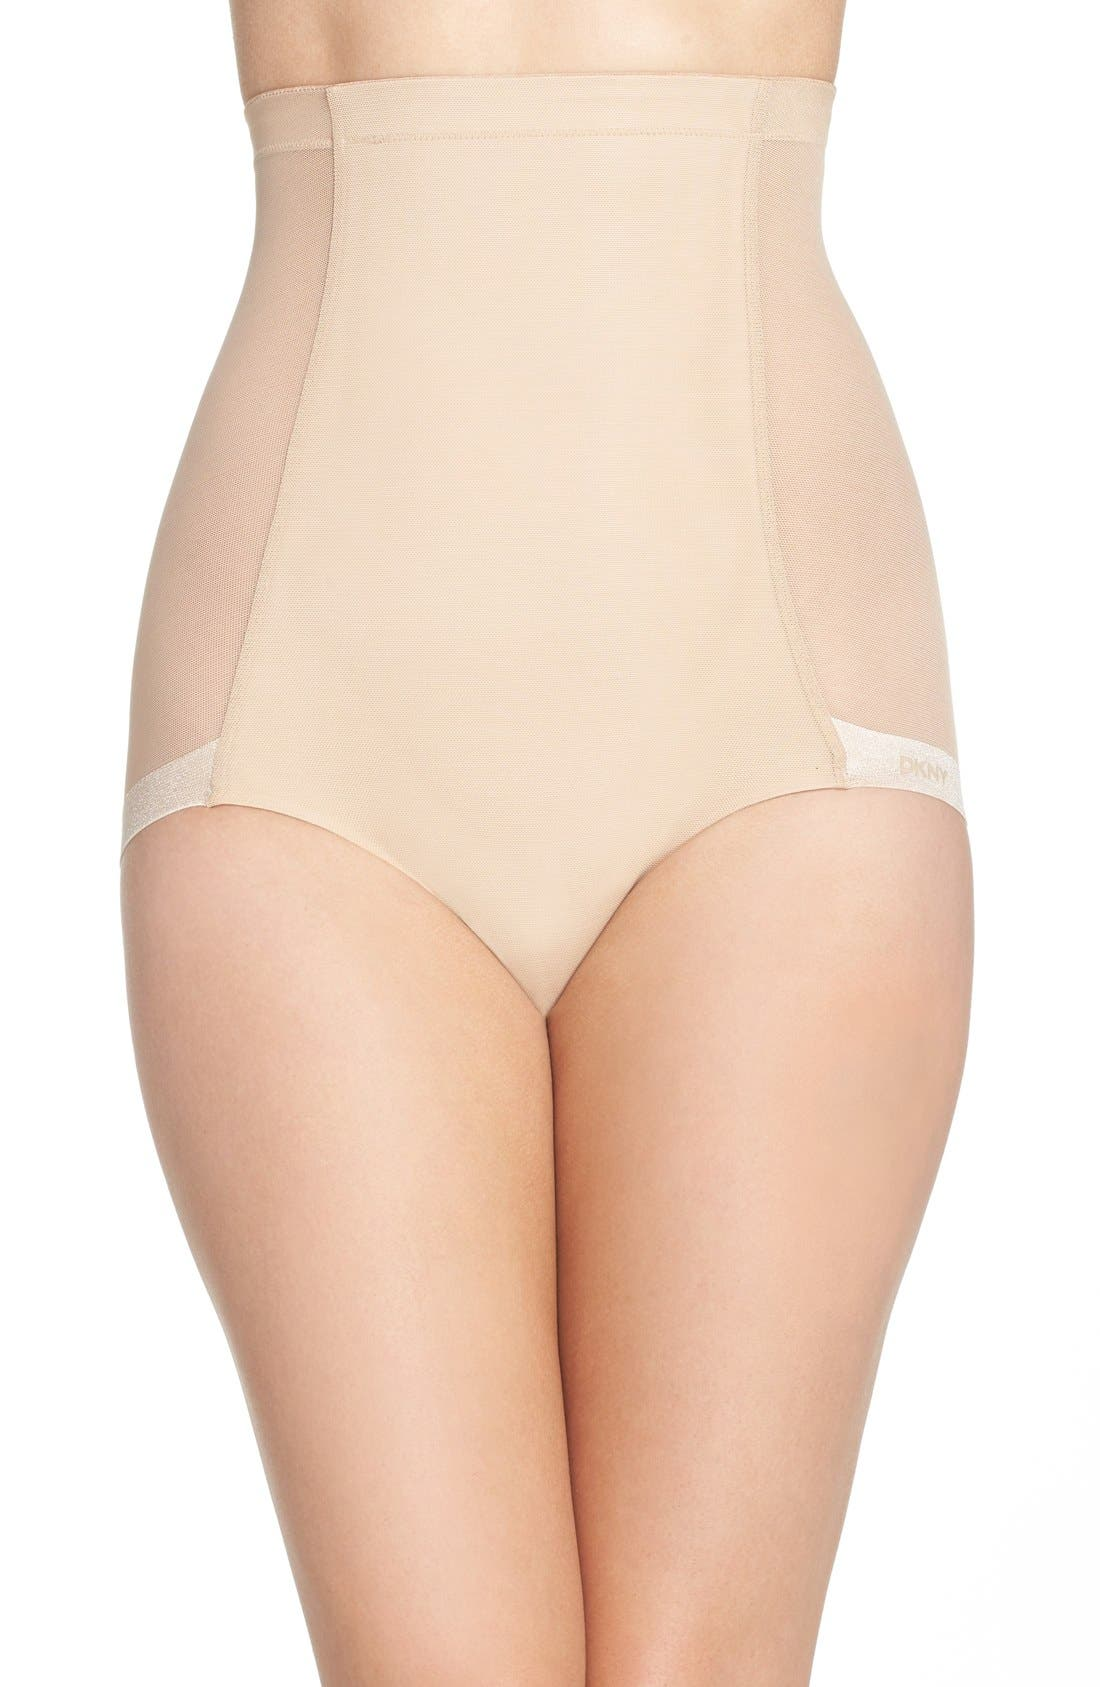 Image of DKNY Modern Lights Smoothing Briefs